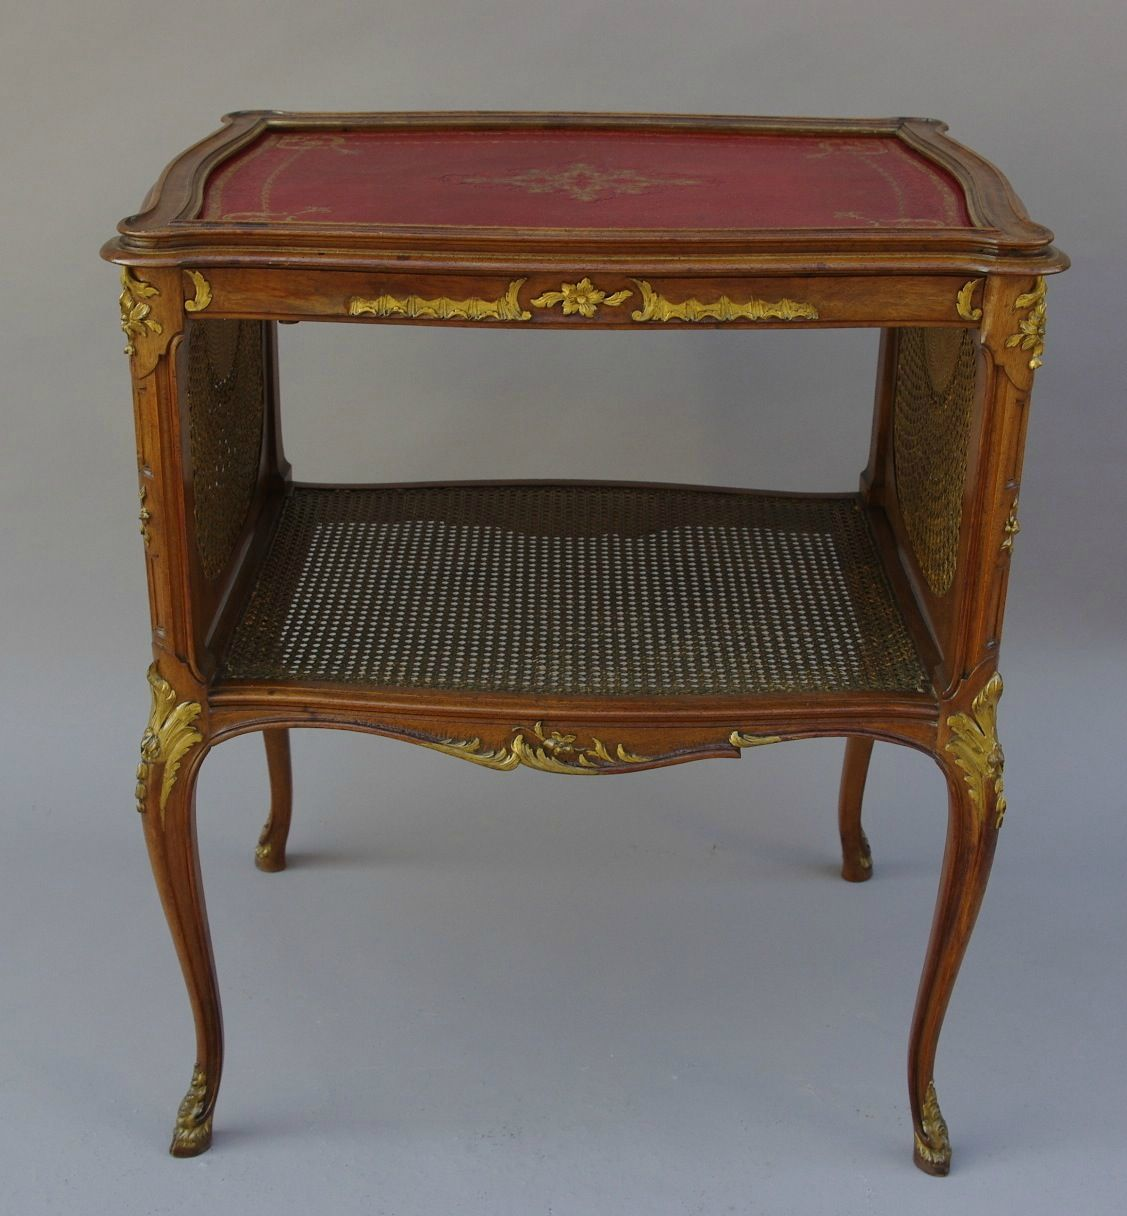 Petite table de salon cannee de style louis xv estampillee for Copie meuble ancien